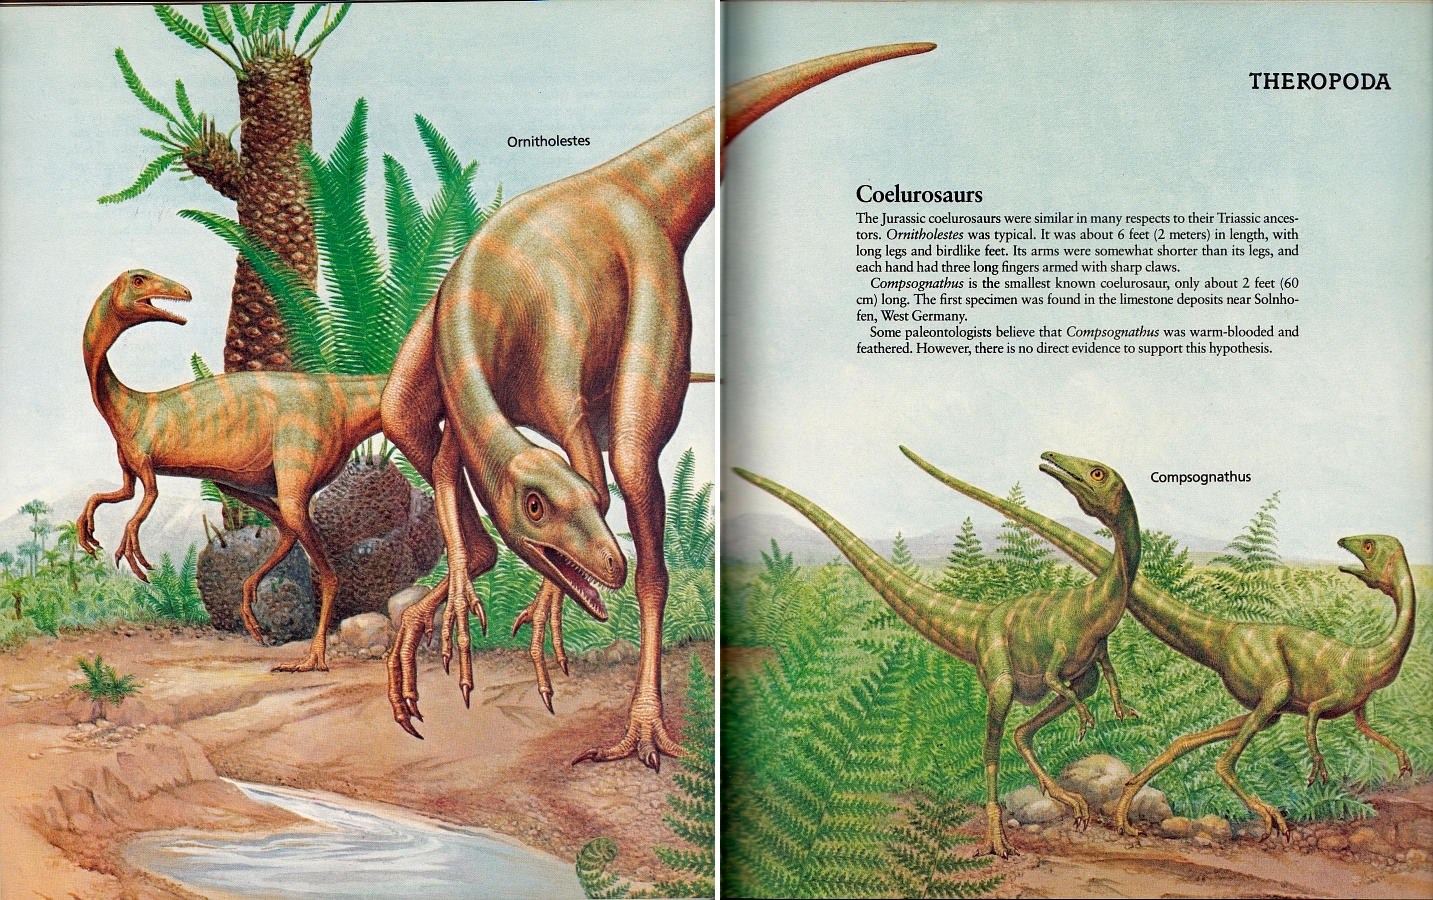 Ornitholestes and Compsognathus by Peter Zallinger